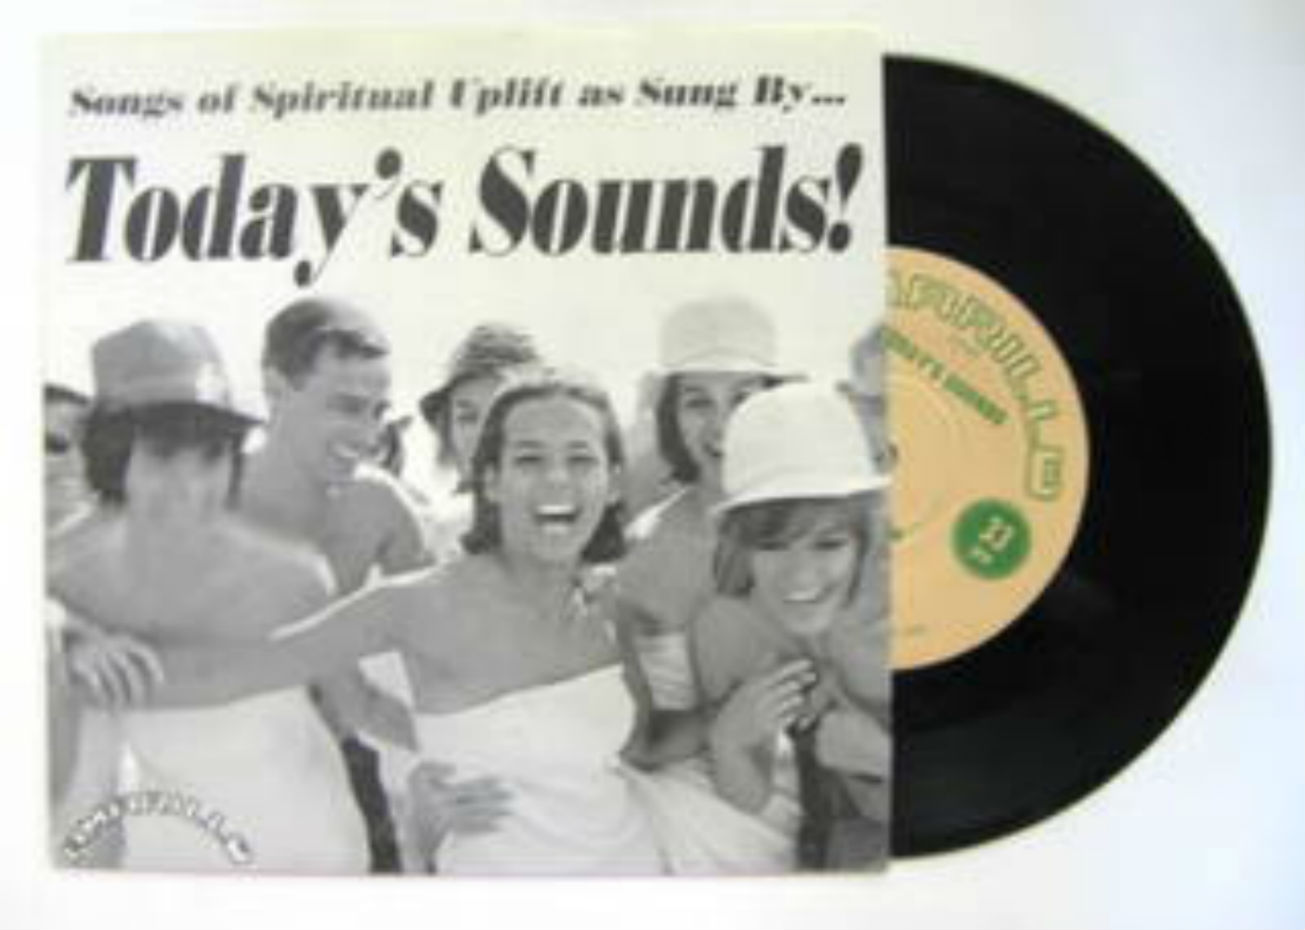 Today's Sounds / Songs Of Spiritual Uplift